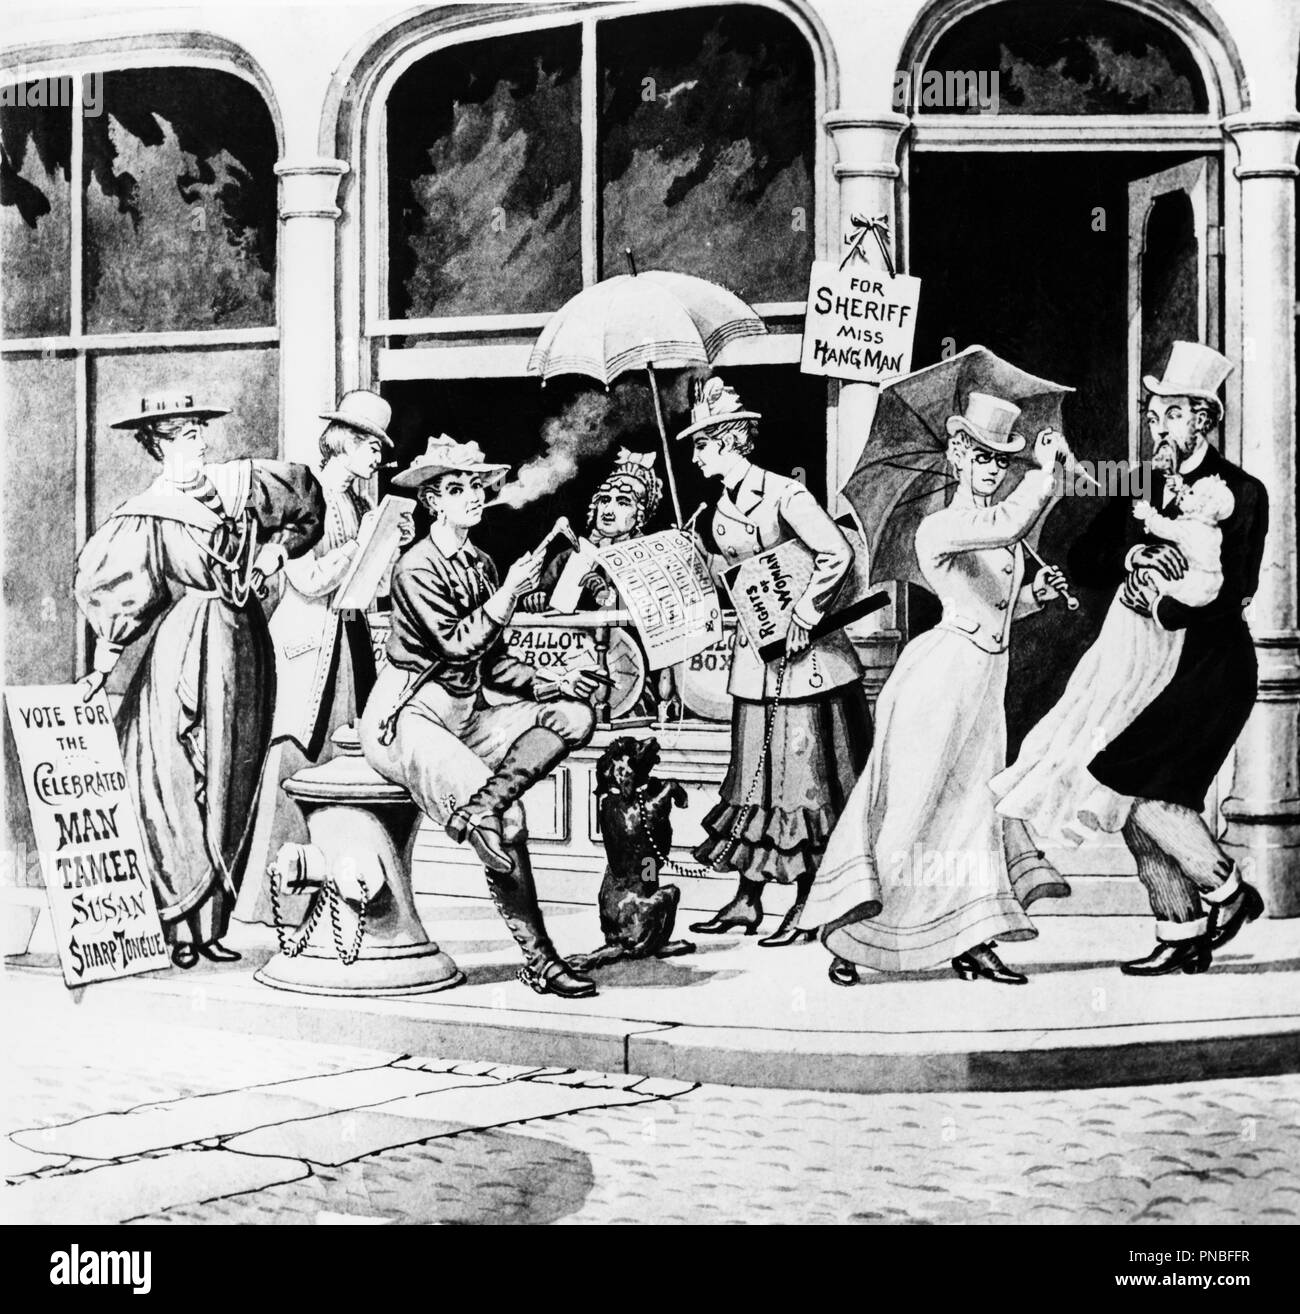 1800s ANTI-SUFFRAGE CARTOON SHOWING WOMEN RUNNING FOR OFFICE WEARING PANTS BOOTS SMOKING CIGARETTE ATTACKING MAN HOLDING BABY - a7969 HAR001 HARS 1800s B&W VOTE CIGARETTES FREEDOM POLITICAL HUMOROUS STYLES TROUSERS SUFFRAGE TURN OF THE 20TH CENTURY WOMEN'S RIGHTS CARTOON EXCITEMENT LEADERSHIP PROGRESS RIGHTS TO FEMININE MASCULINE OCCUPATIONS POLITICS RIGHT POOCH EQUAL RIGHTS CAMPAIGN 19TH CENTURY CONCEPTUAL STYLISH SUPPORT BLOOMERS SEXISM WOMEN'S BALLOT BOX FASHIONS SEXIST BLACK AND WHITE CAUCASIAN ETHNICITY DEMONSTRATING FEMINIST HAR001 OLD FASHIONED - Stock Image